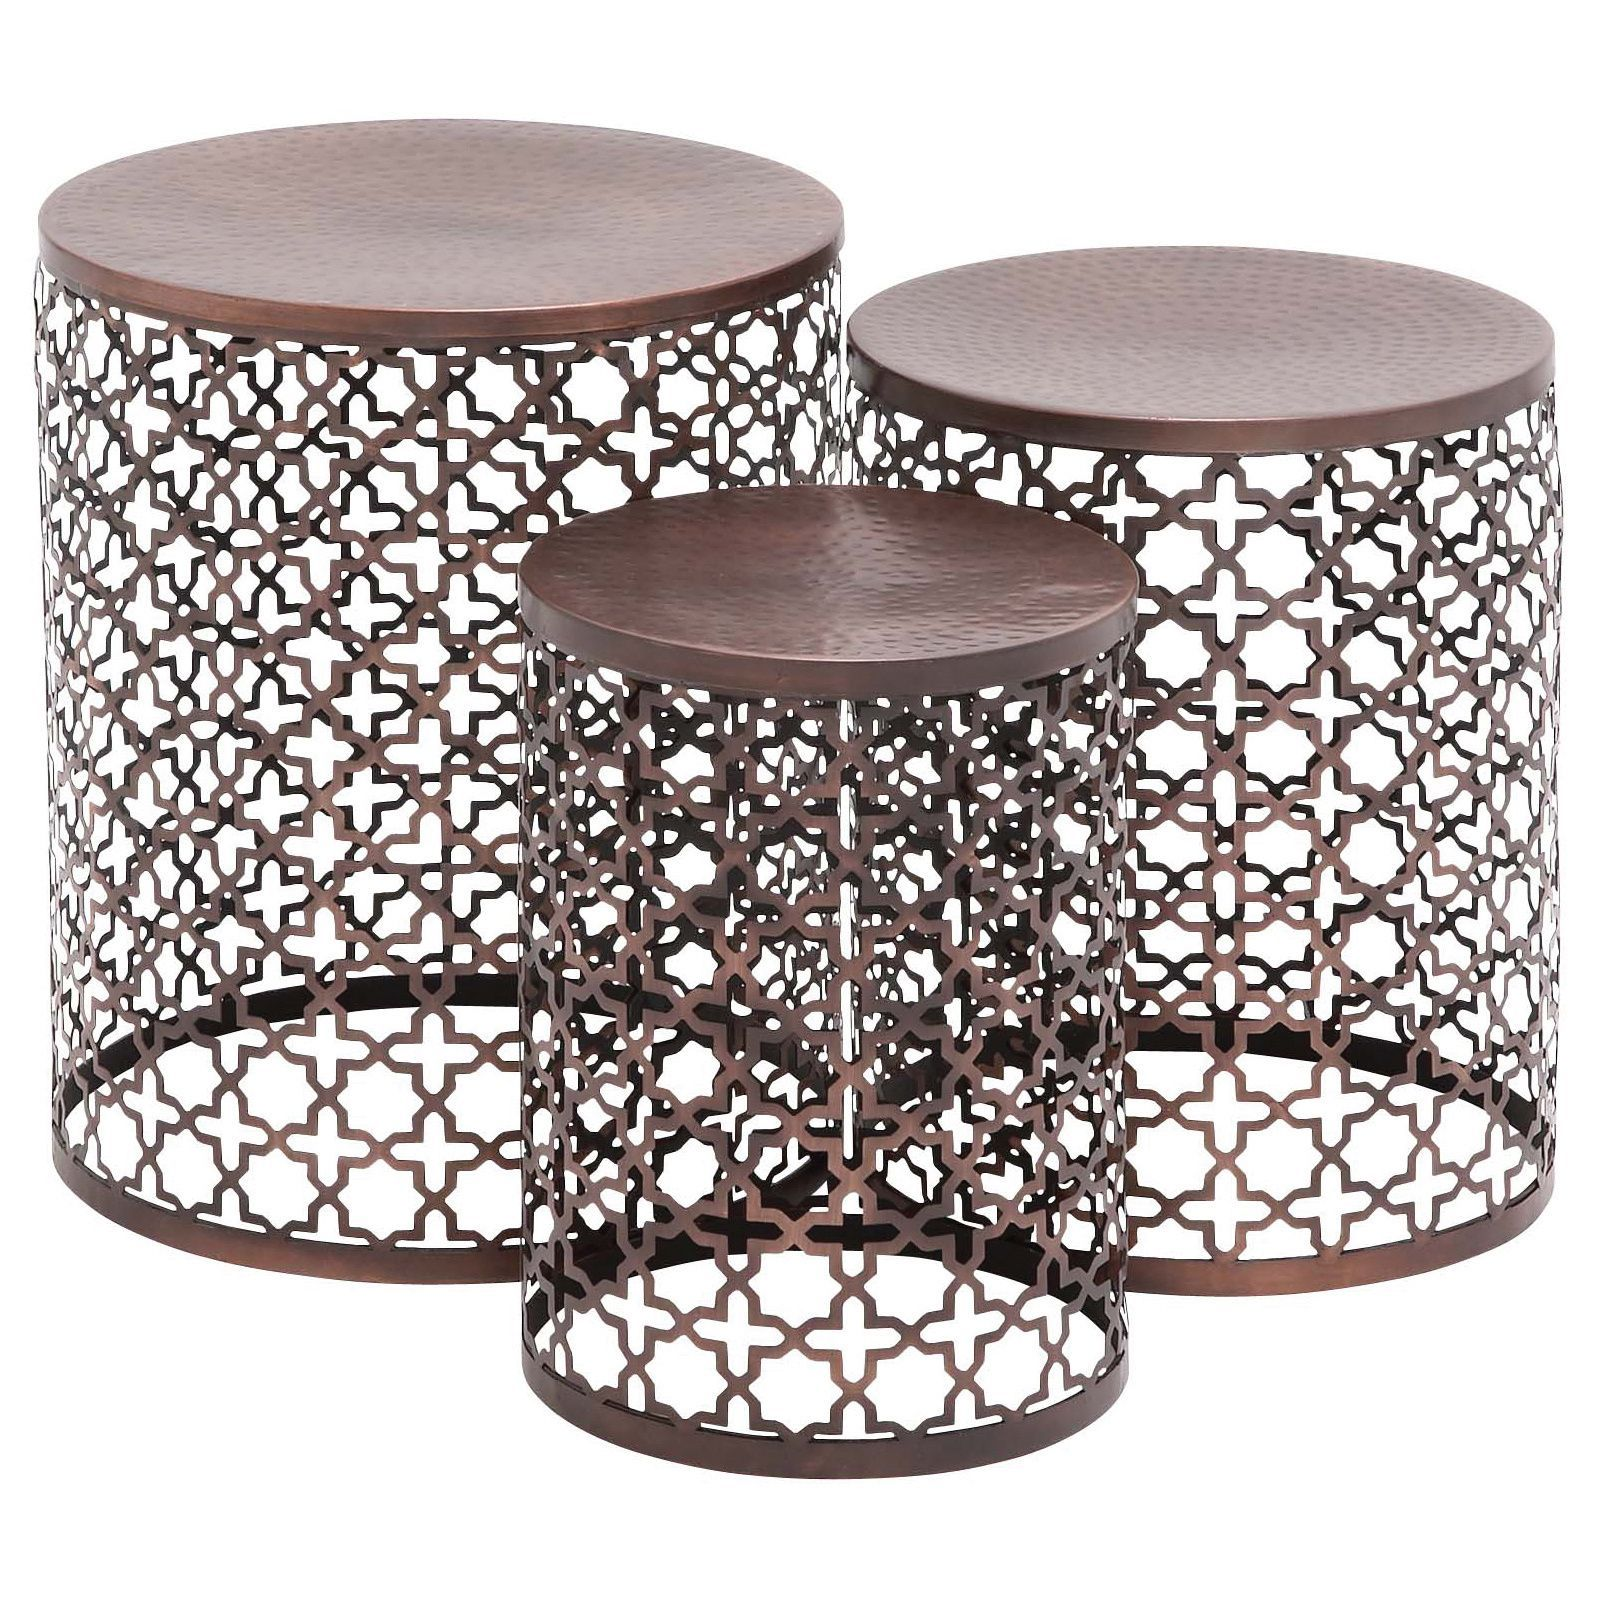 amazing metal accent table outdoor white target threshold top base bronze wrought tables patio glass legs side drum round corranade full size steven alan unique lamps bar height